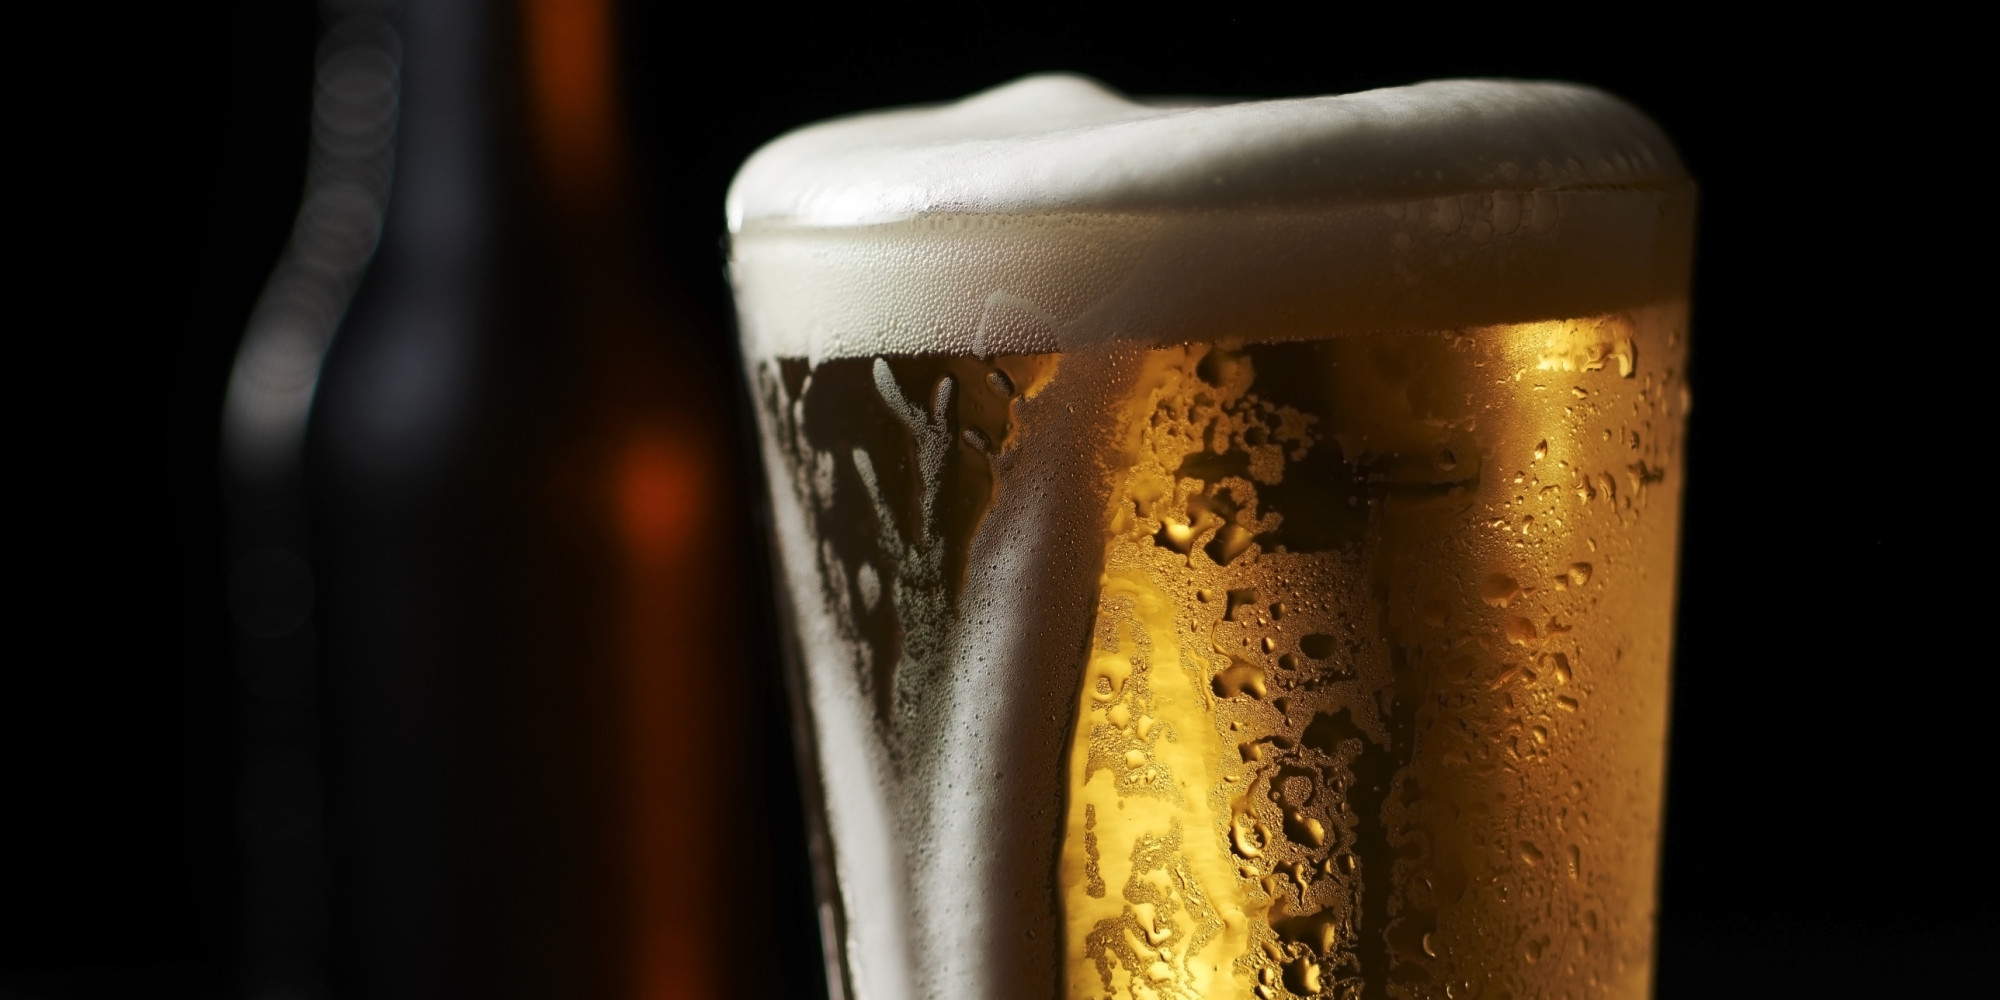 Ode to the Workaday Beer | by Dami Ajayi via @theMagunga